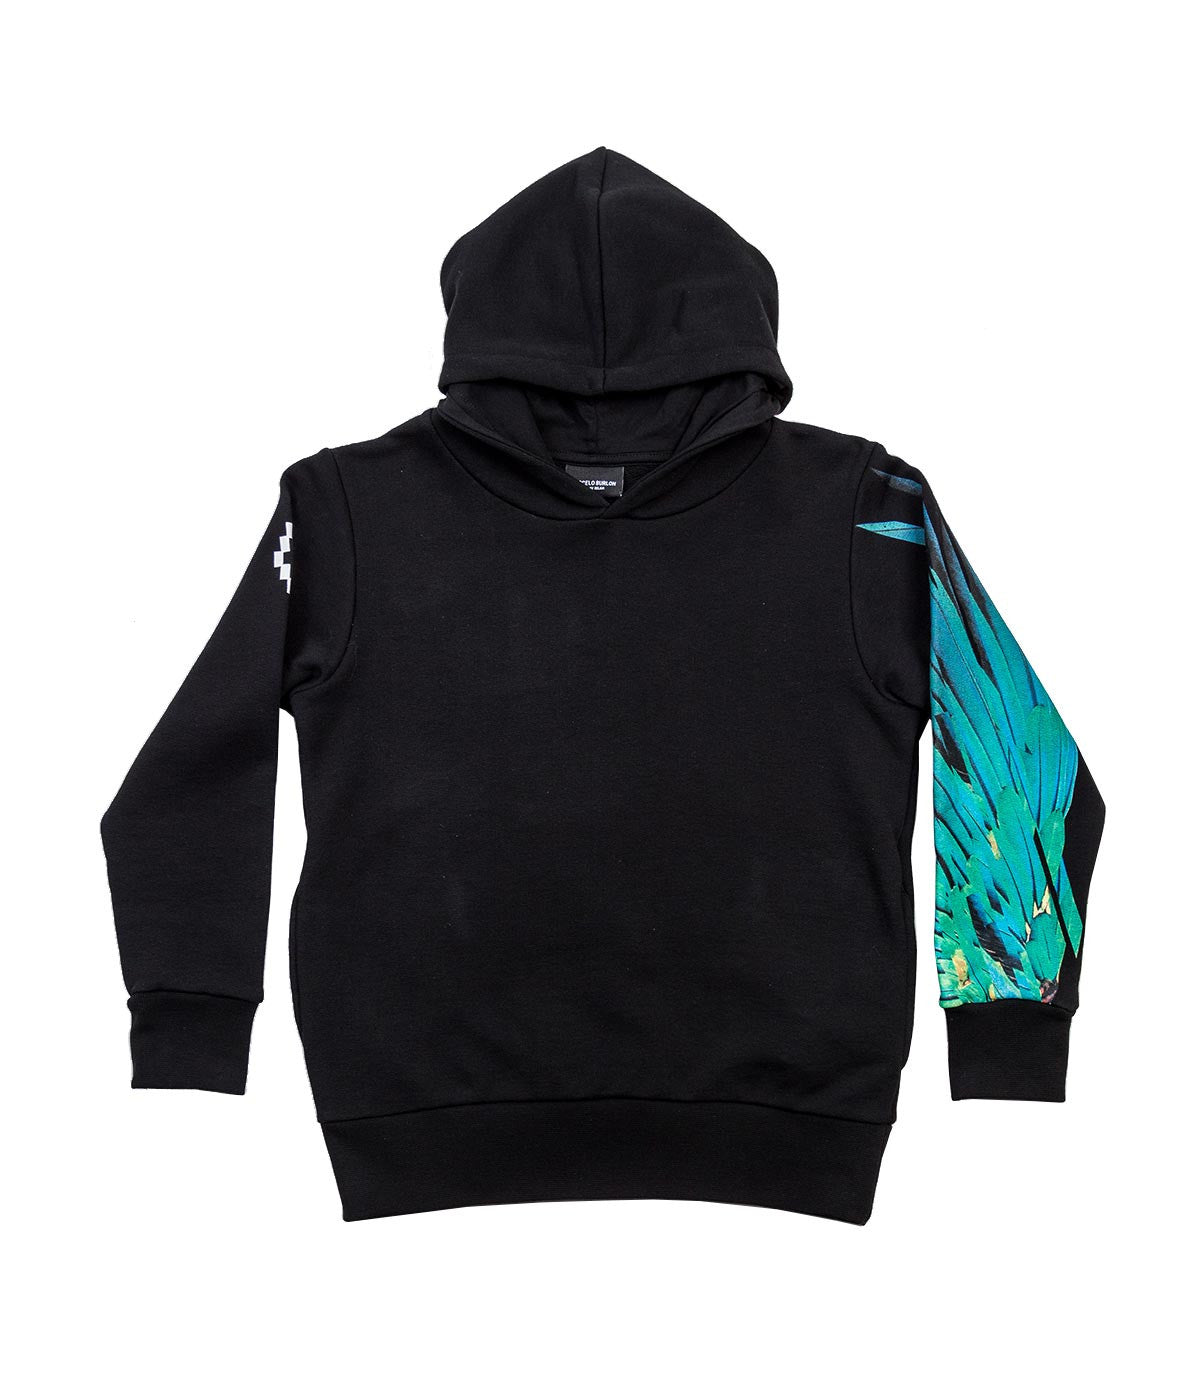 Black Graphic Sleeves Hoodie